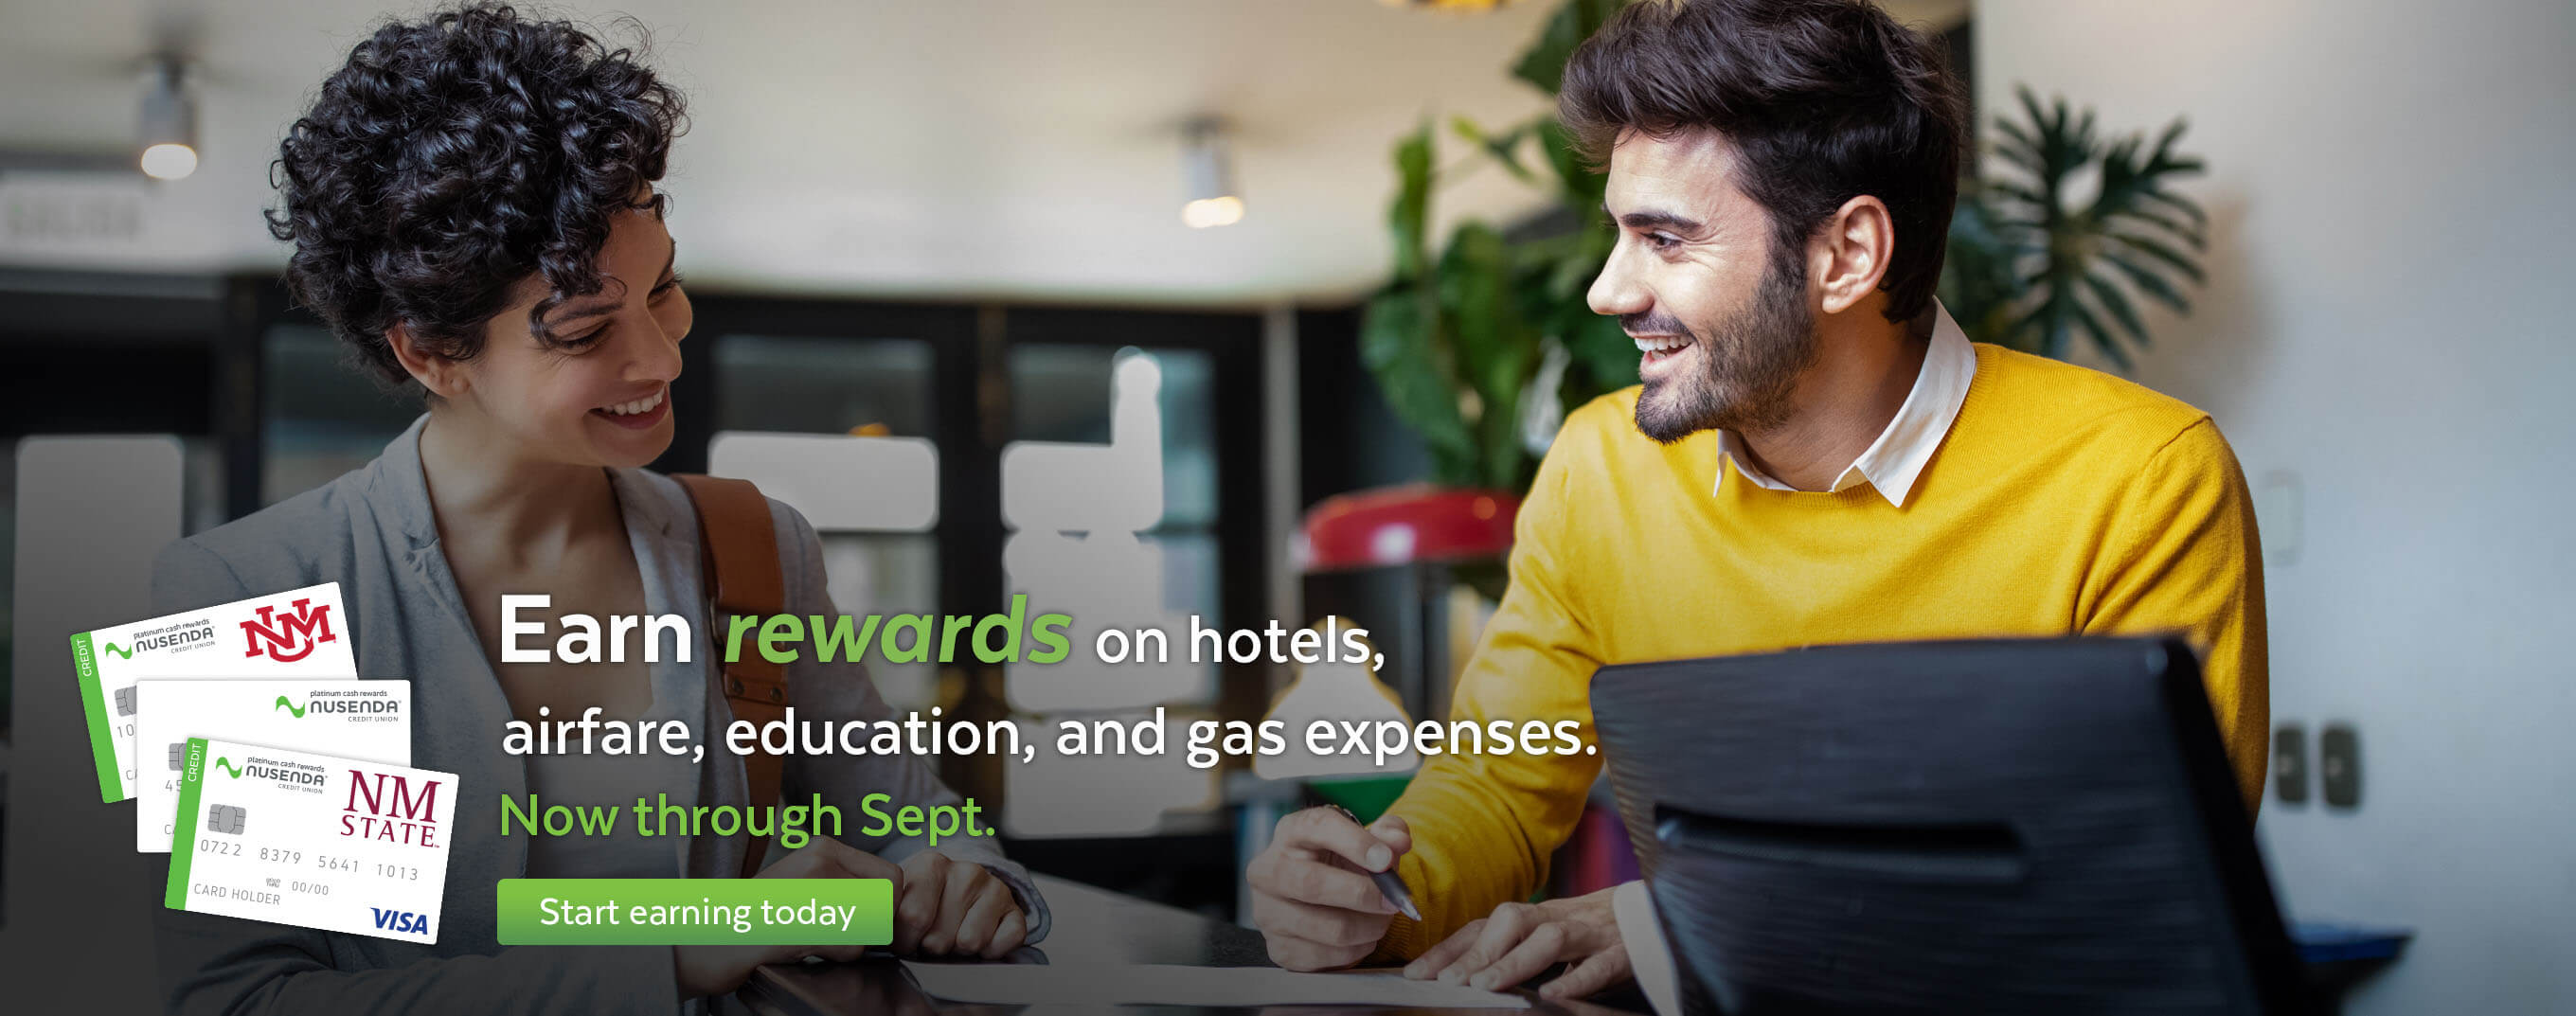 Earn rewards on education, hotel, airfare, and gas expenses now through September.